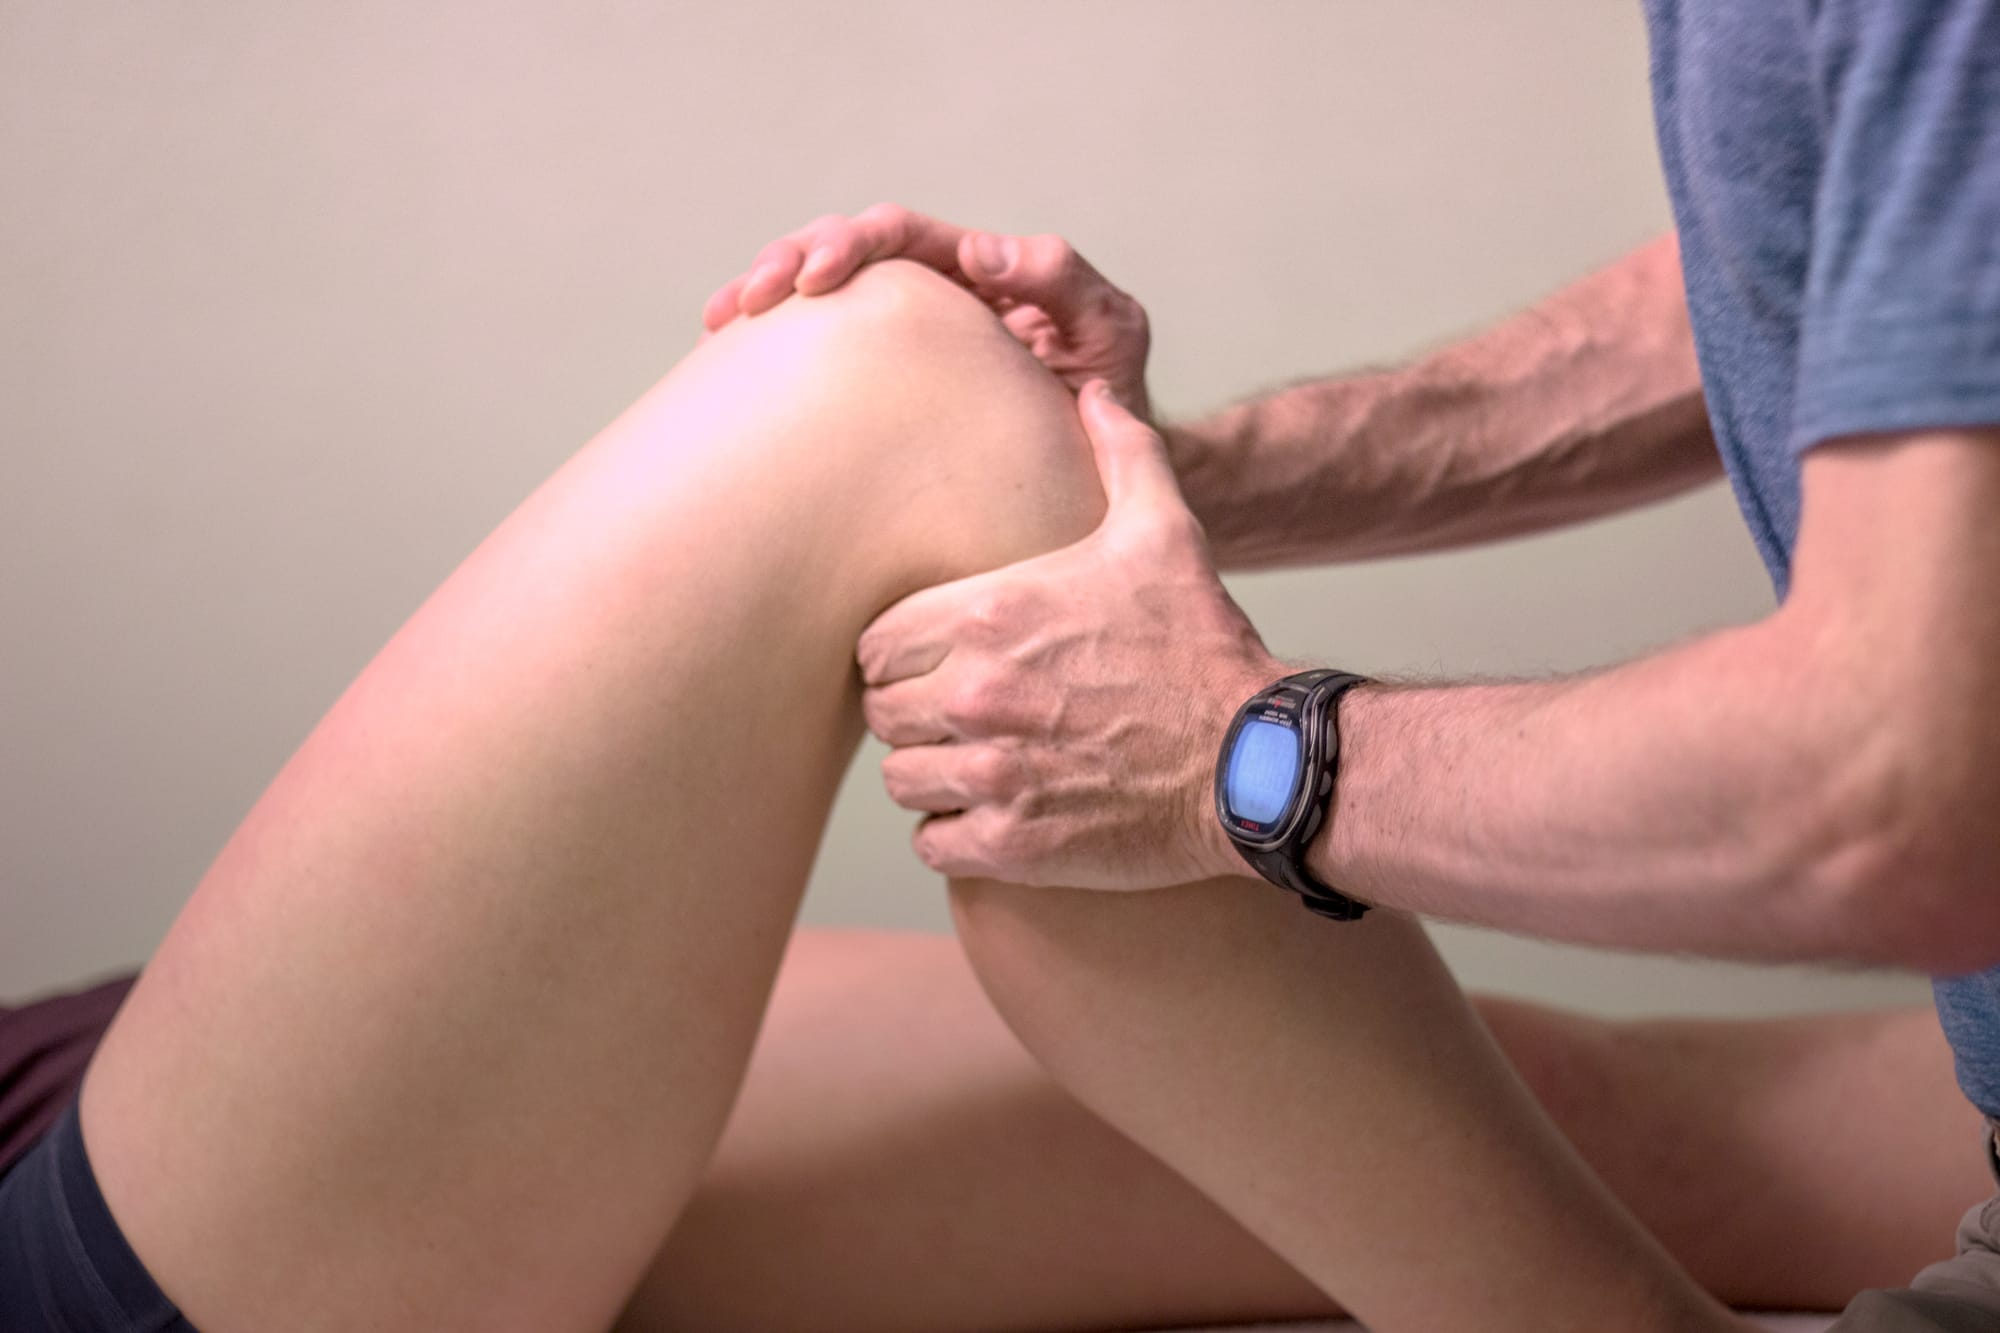 Knee adjustment physical therapy by Joe Uhan